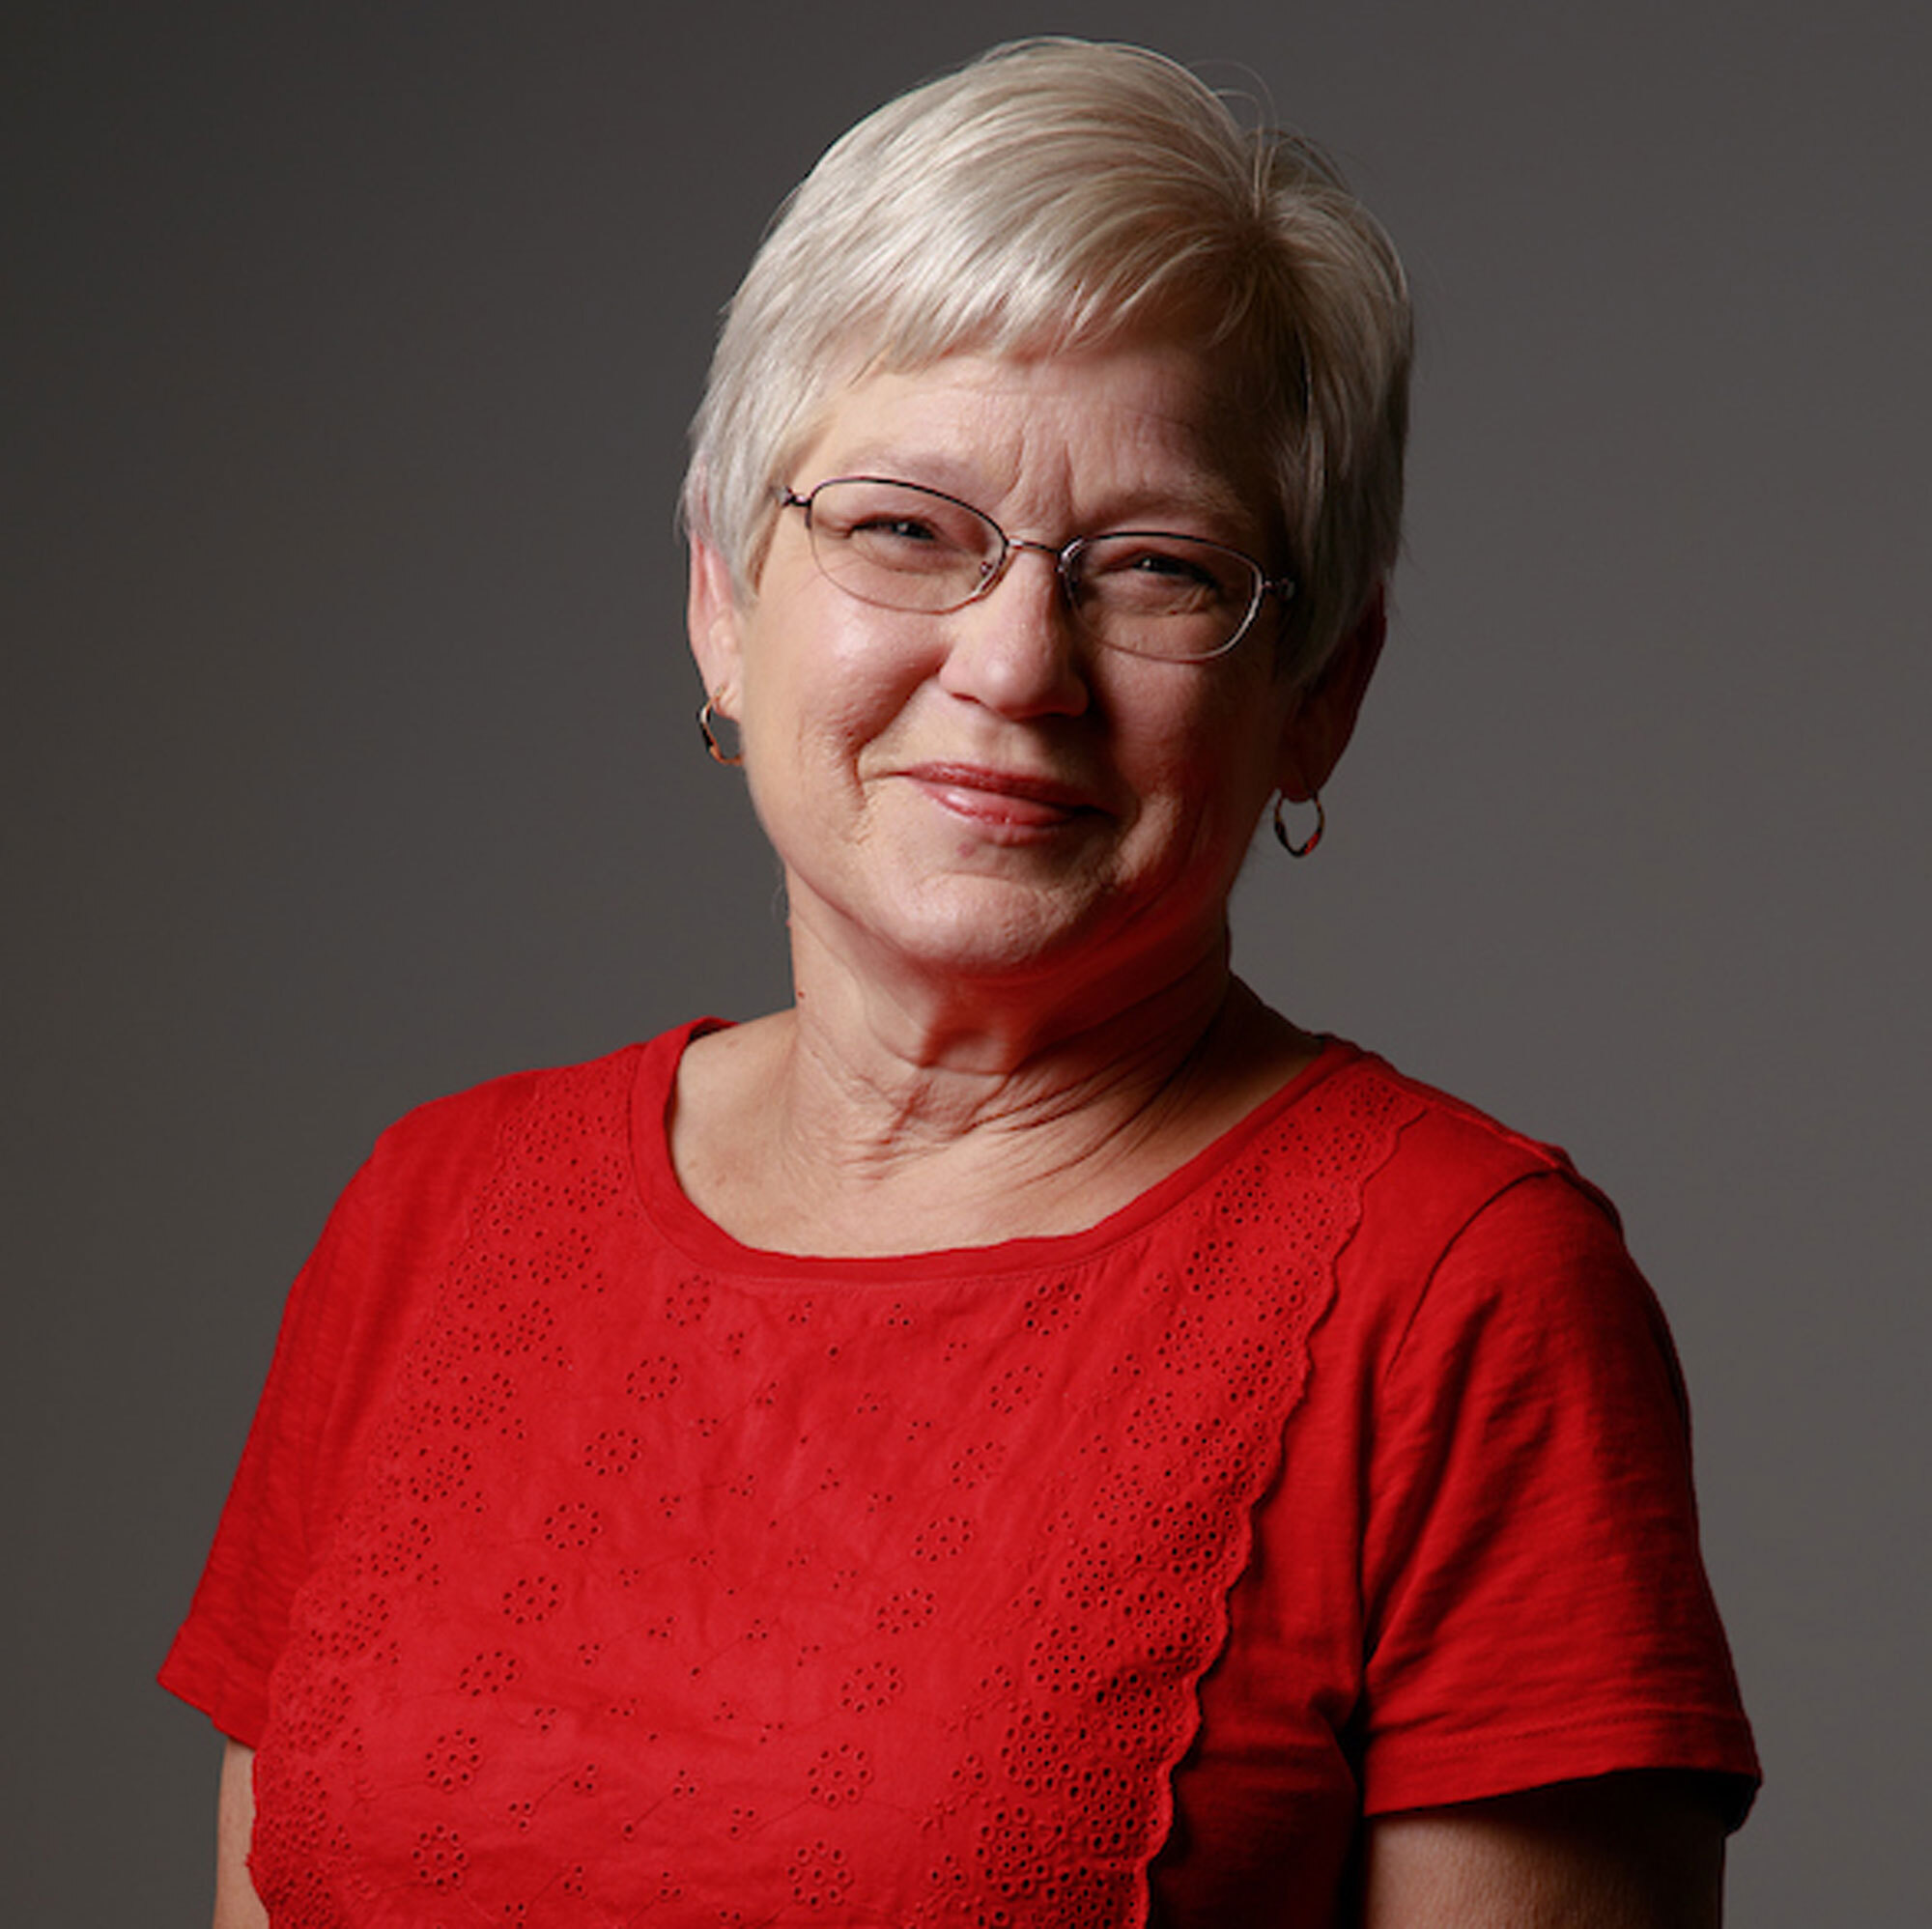 Jeannie Brooks smiles at the camera while wearing a crimson shirt